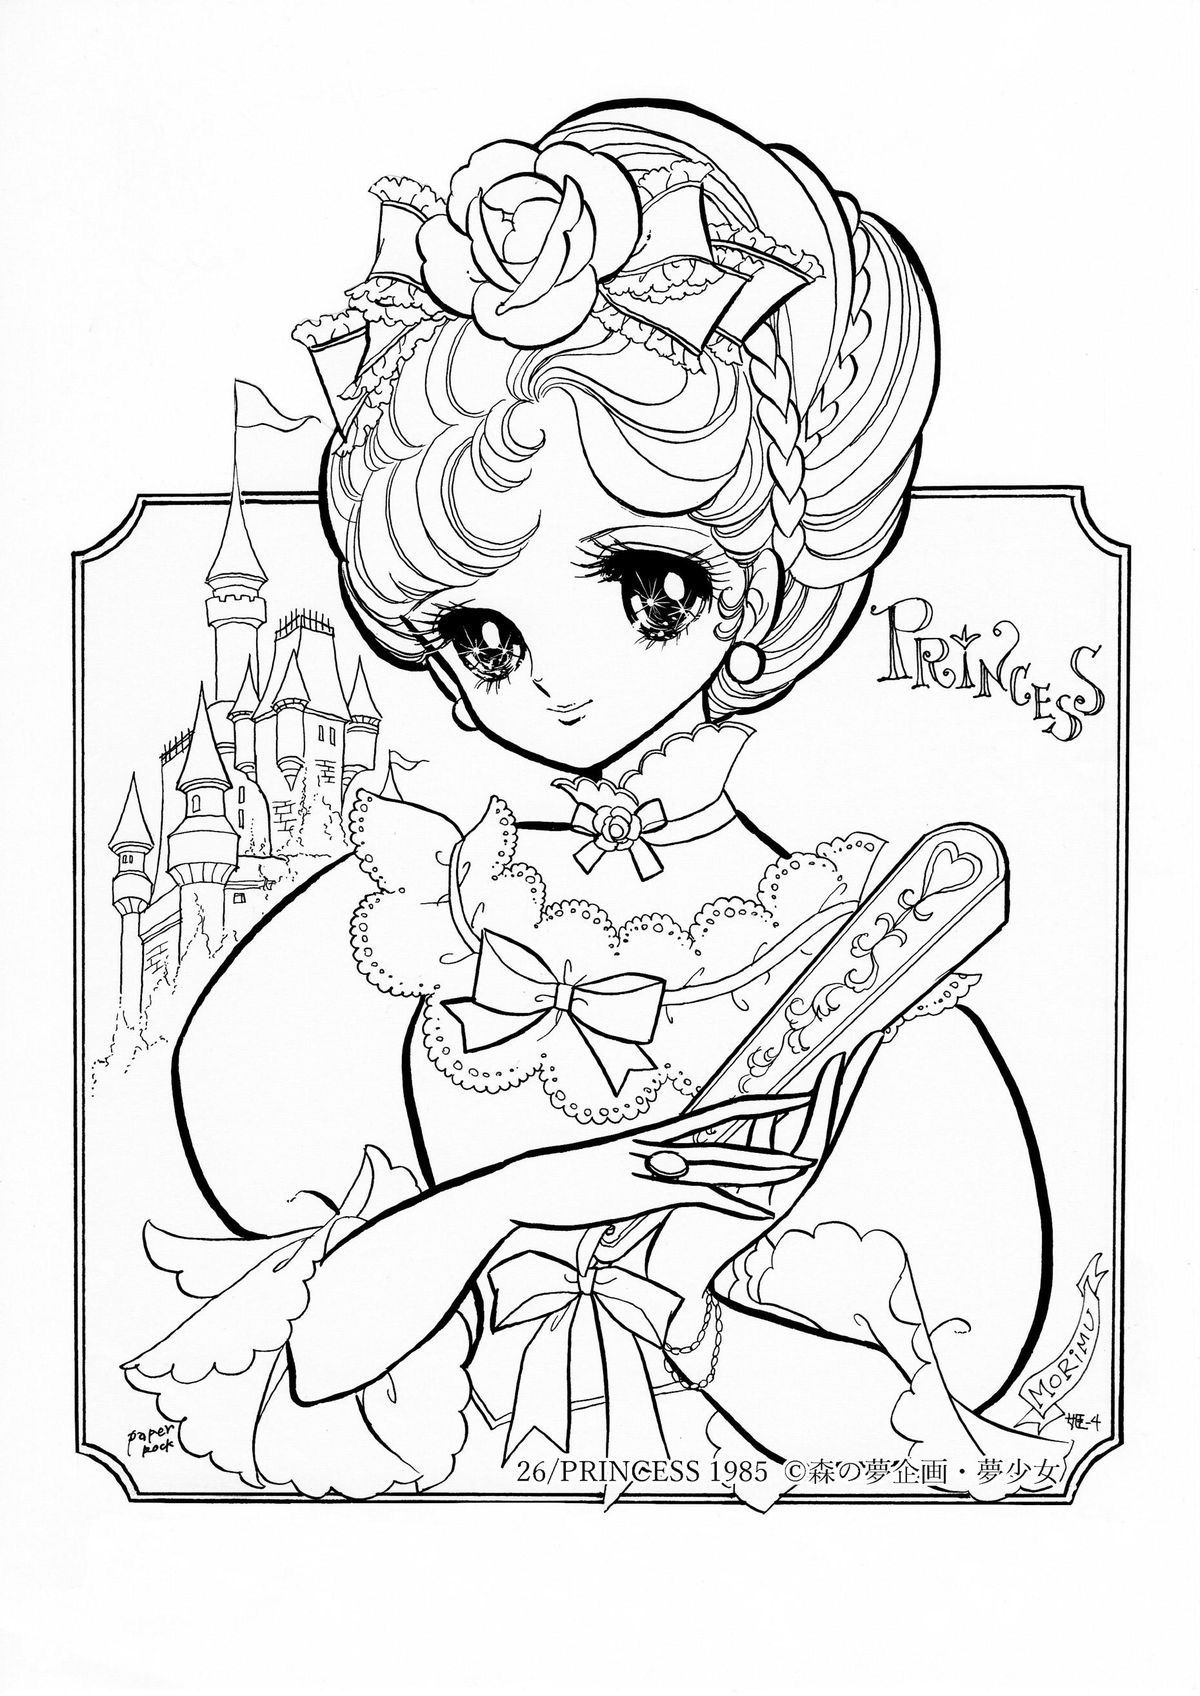 Pin By Non Sh On انمي للتلوين In 2020 Cute Coloring Pages Coloring Book Art Vintage Coloring Books